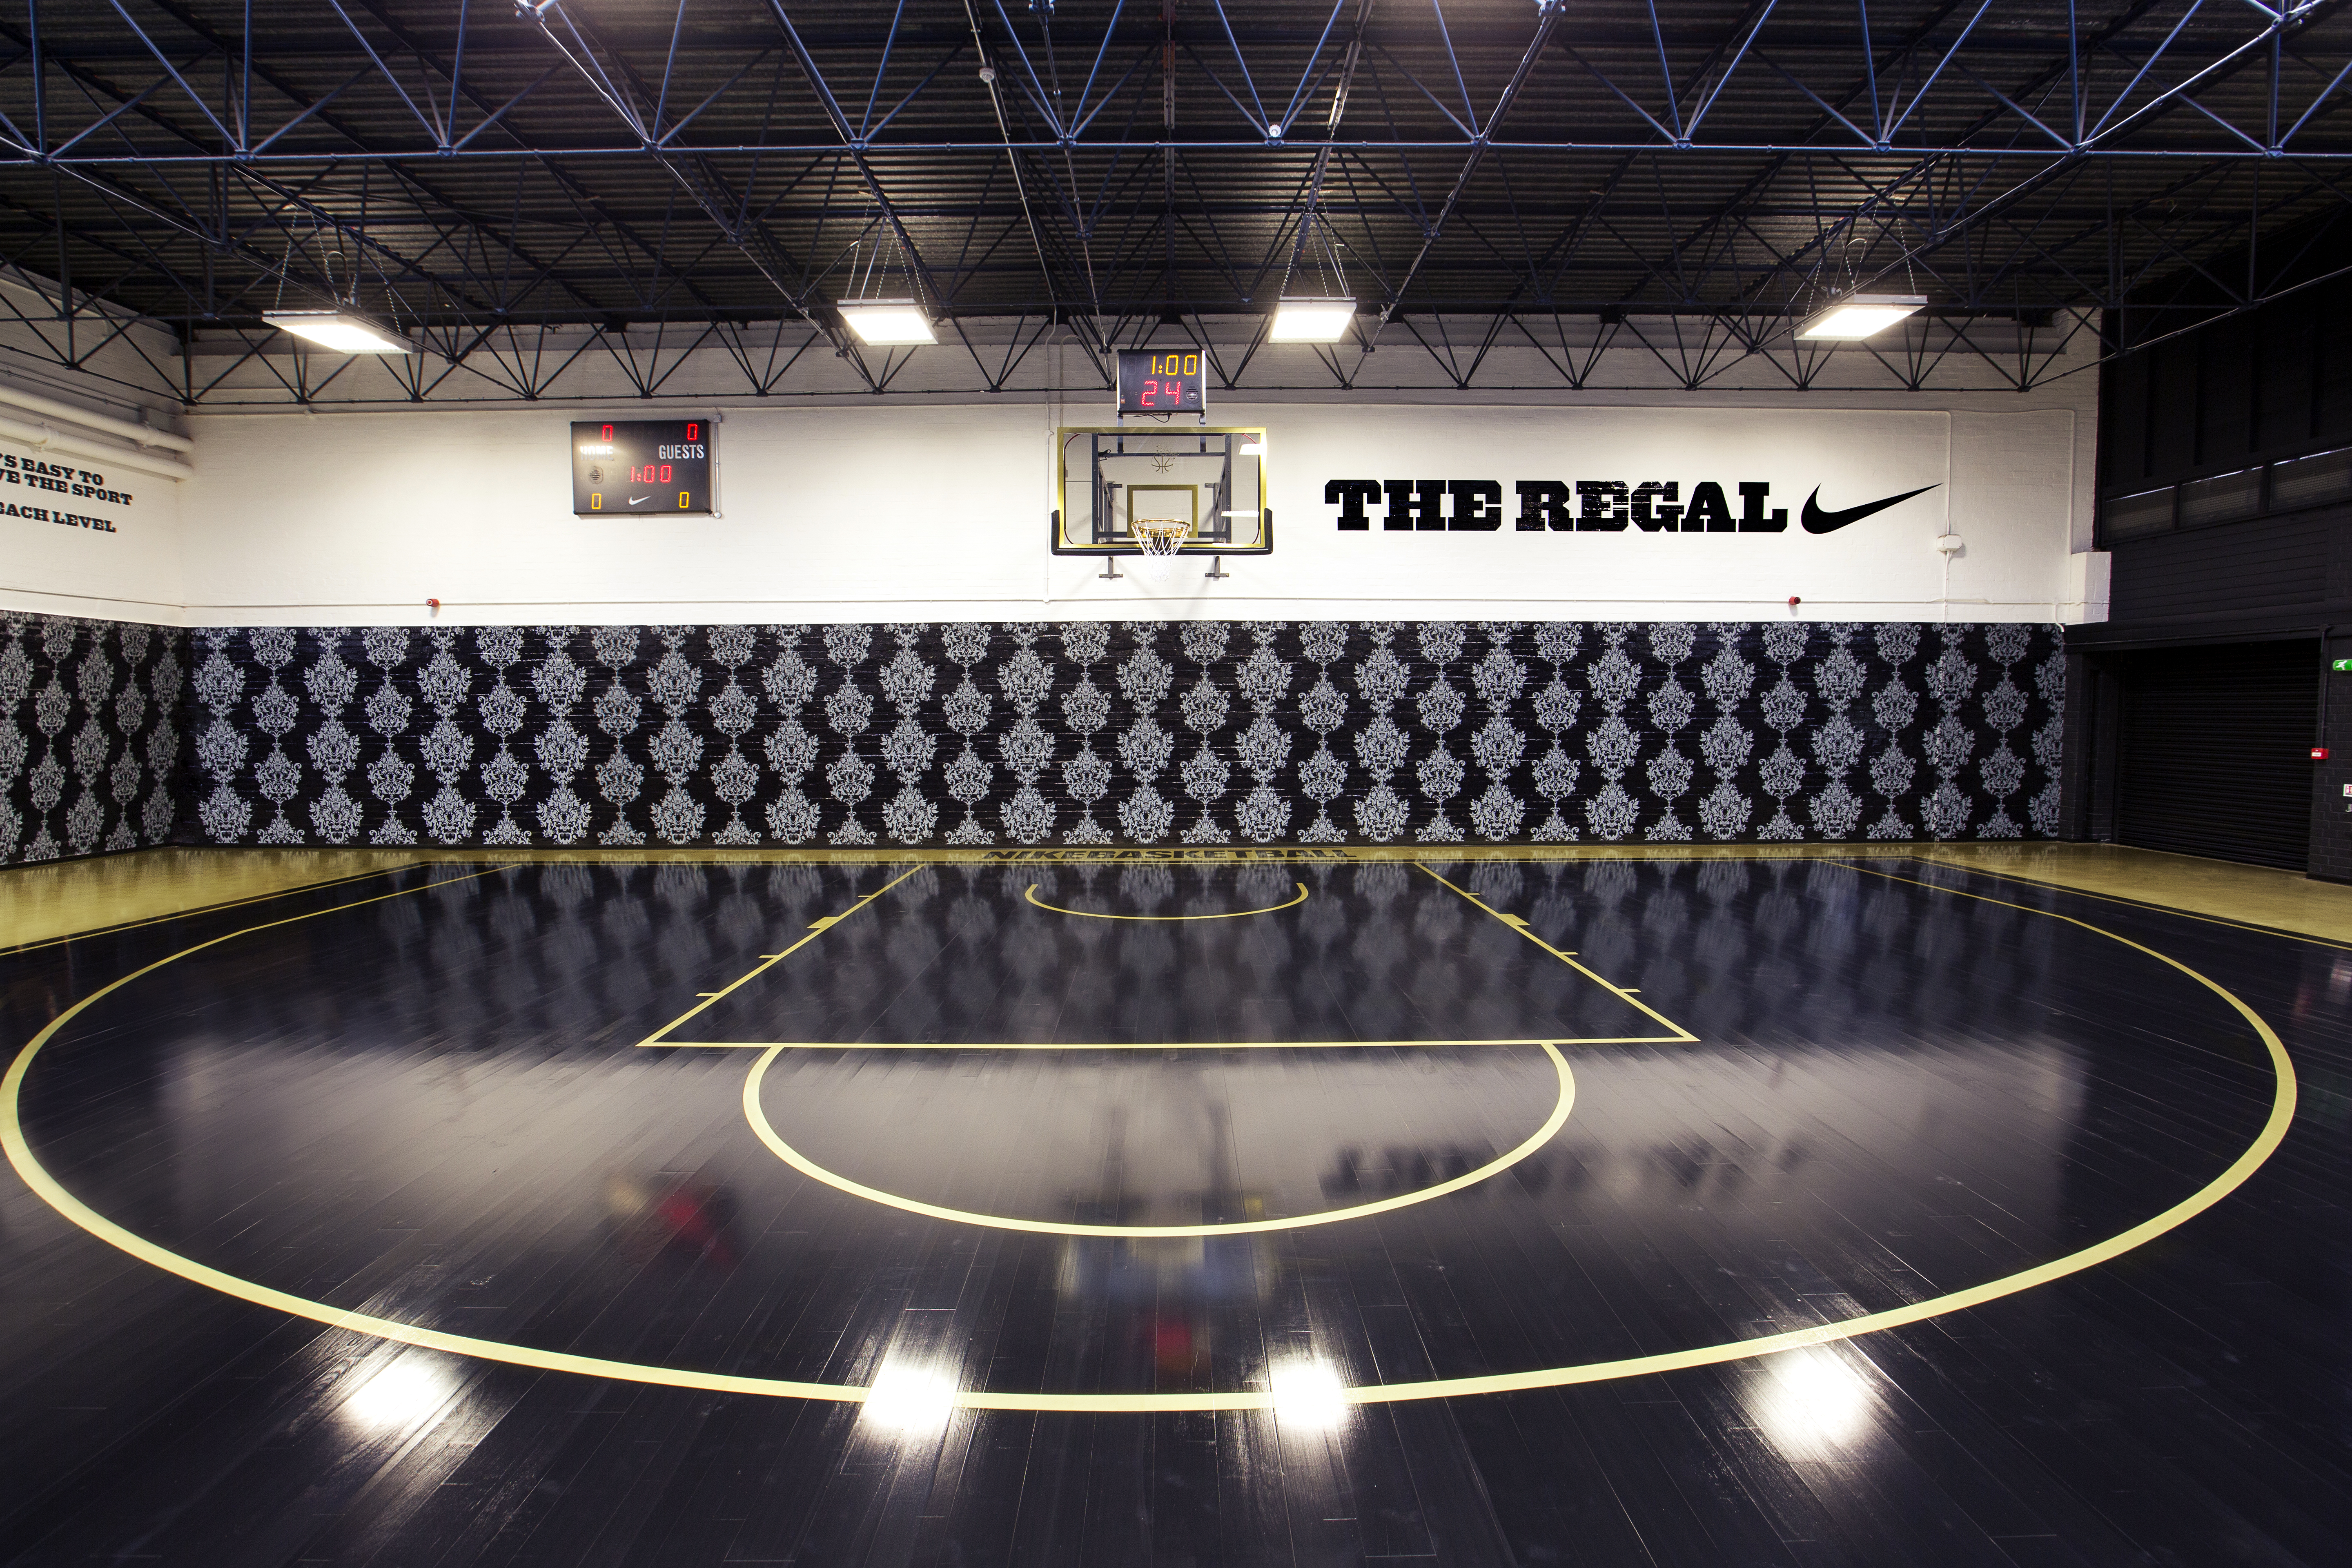 Nike Launches 'The Regal' Basketball Court - Nike News